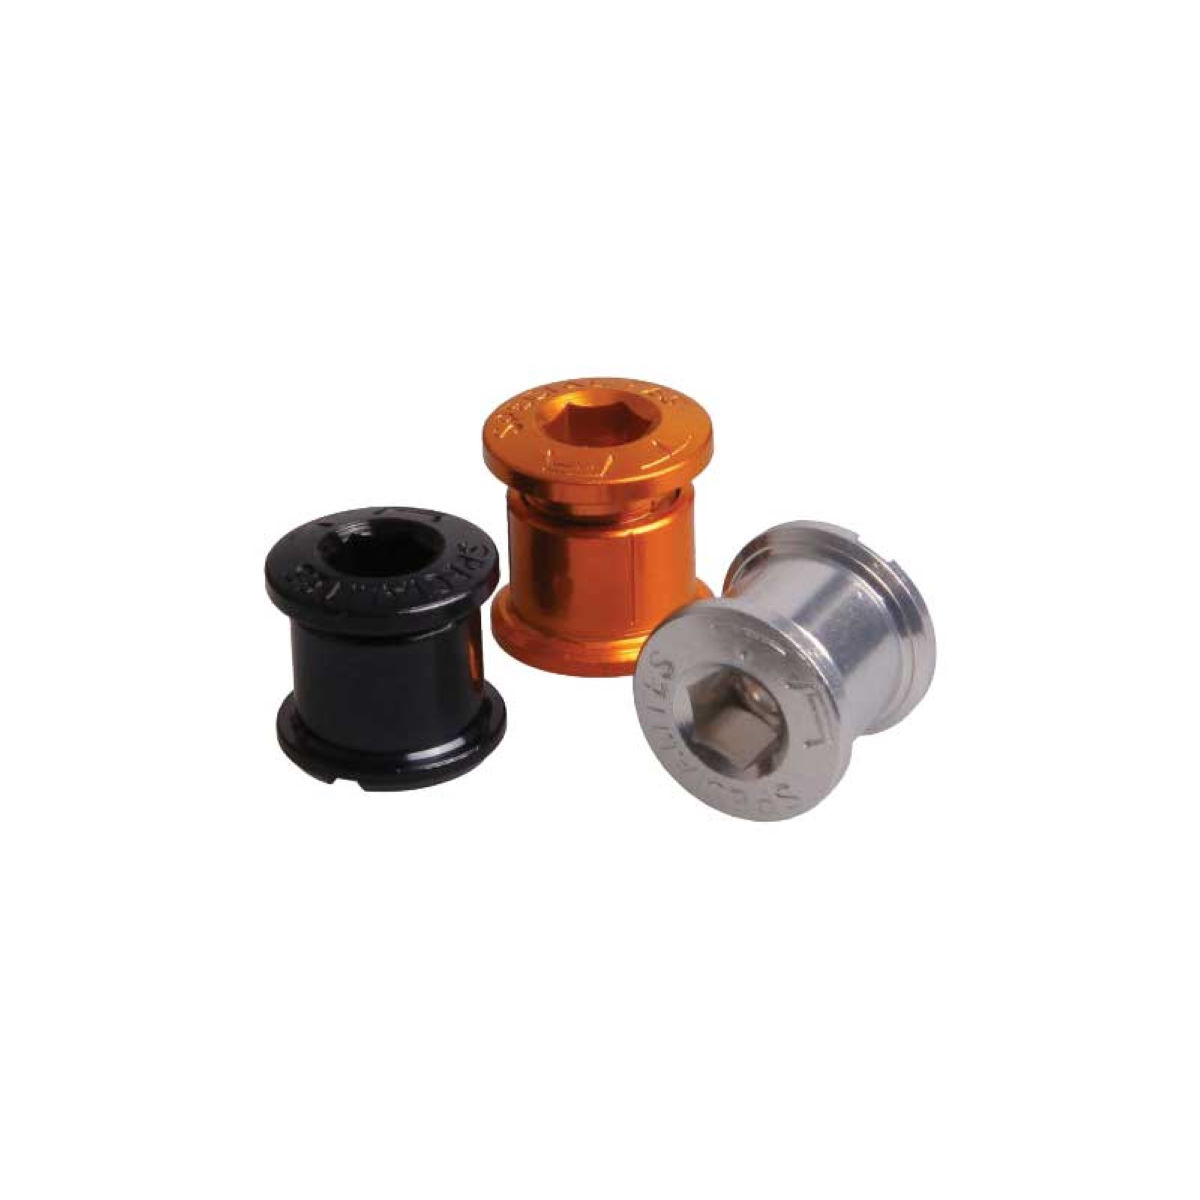 TA Alloy Double Chain Ring Bolts Set of 5